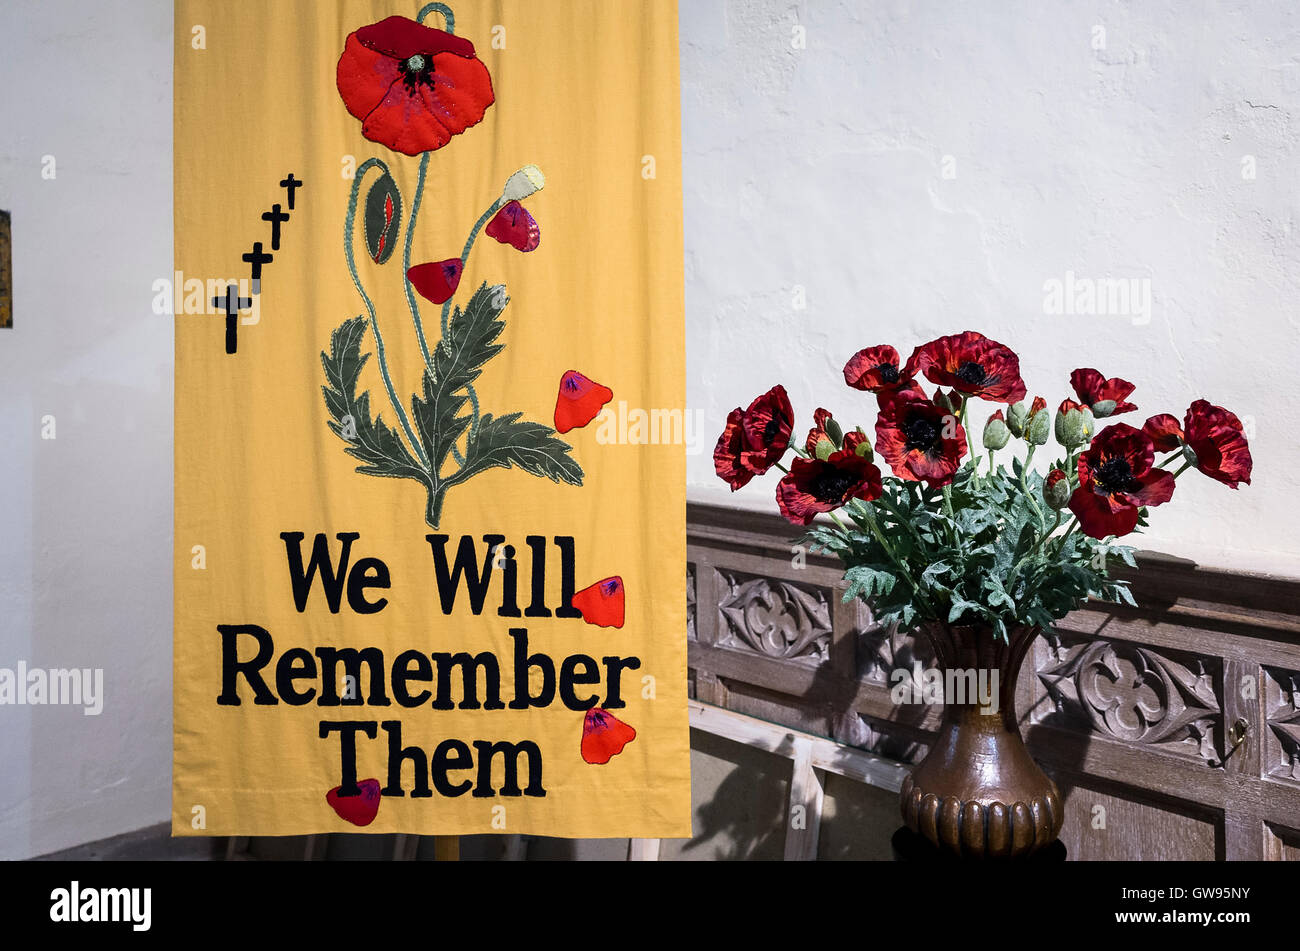 We Will Remember Them banner in a Welsh church UK - Stock Image